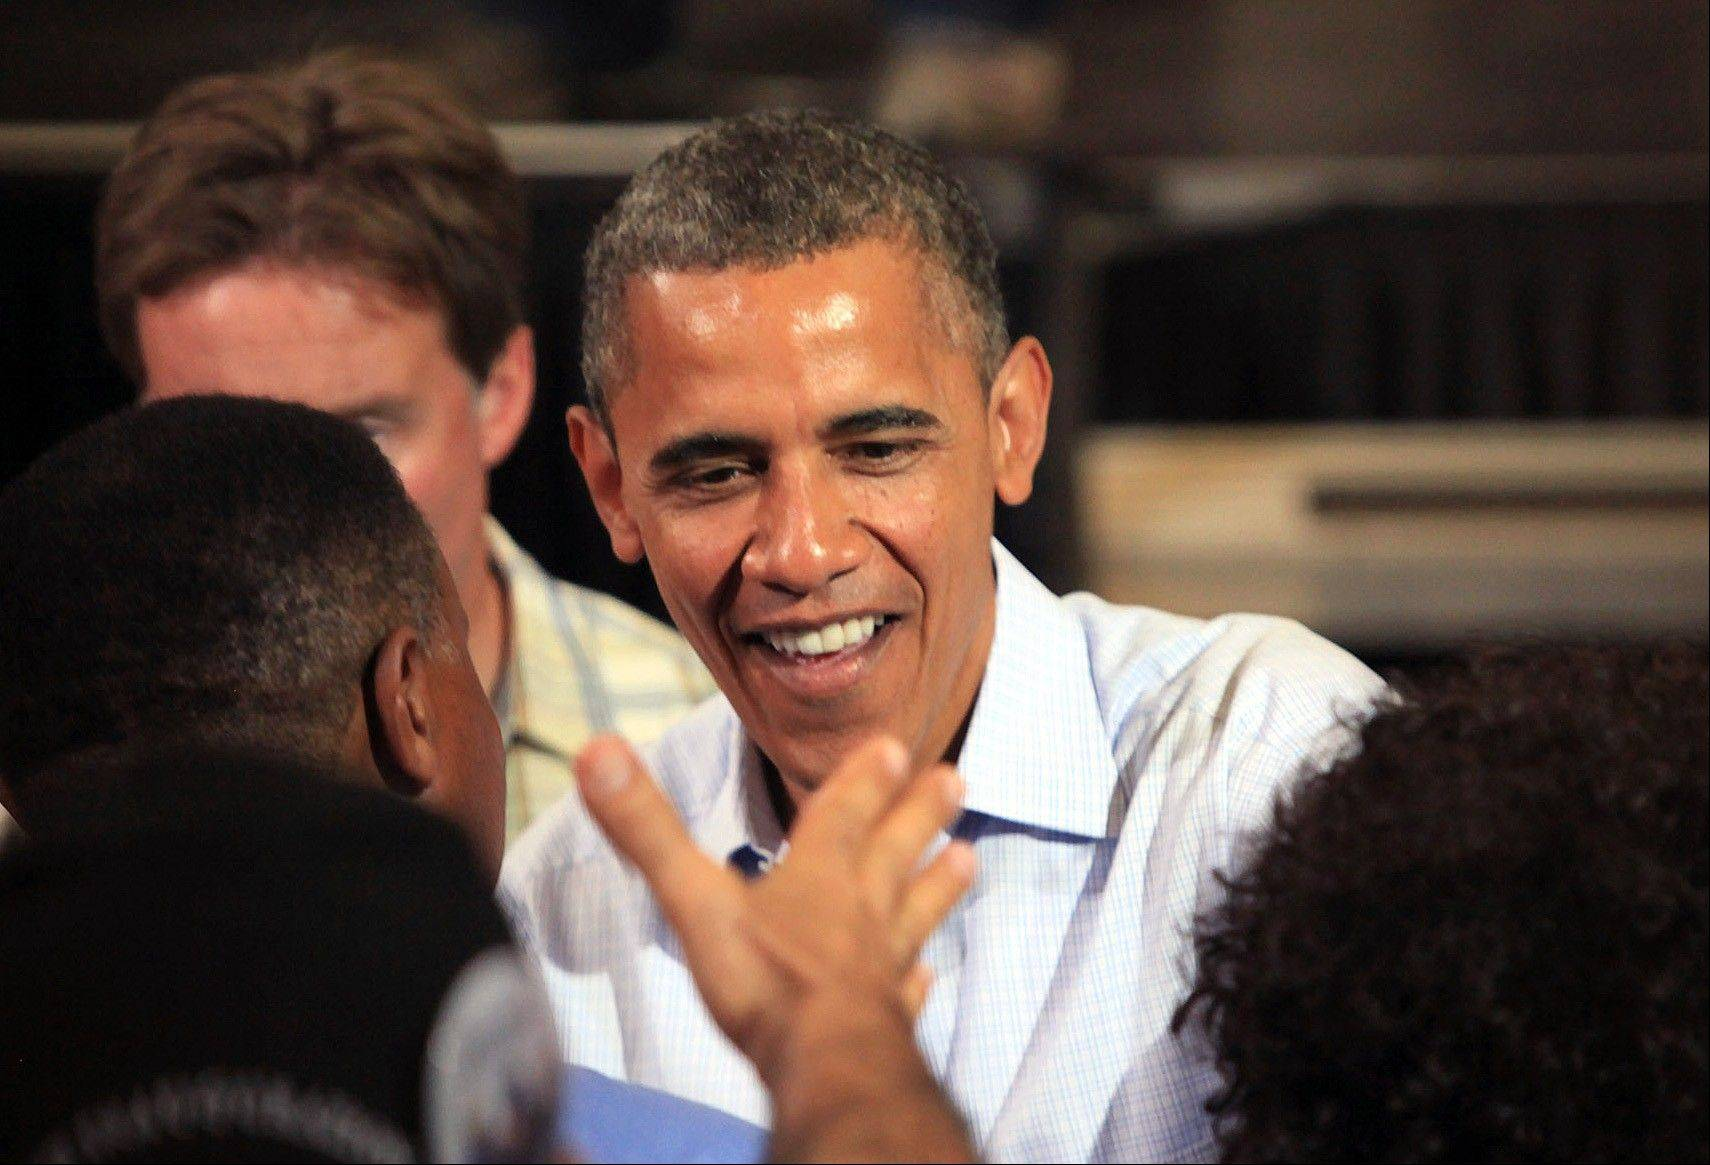 President Barack Obama greets people during a campaign stop at Florida Institute of Technology's Charles and Ruth Clemente Center in Melbourne, Fla., Sunday, Sept. 9. President Barack Obama squeaked out a fundraising victory over Mitt Romney in August.